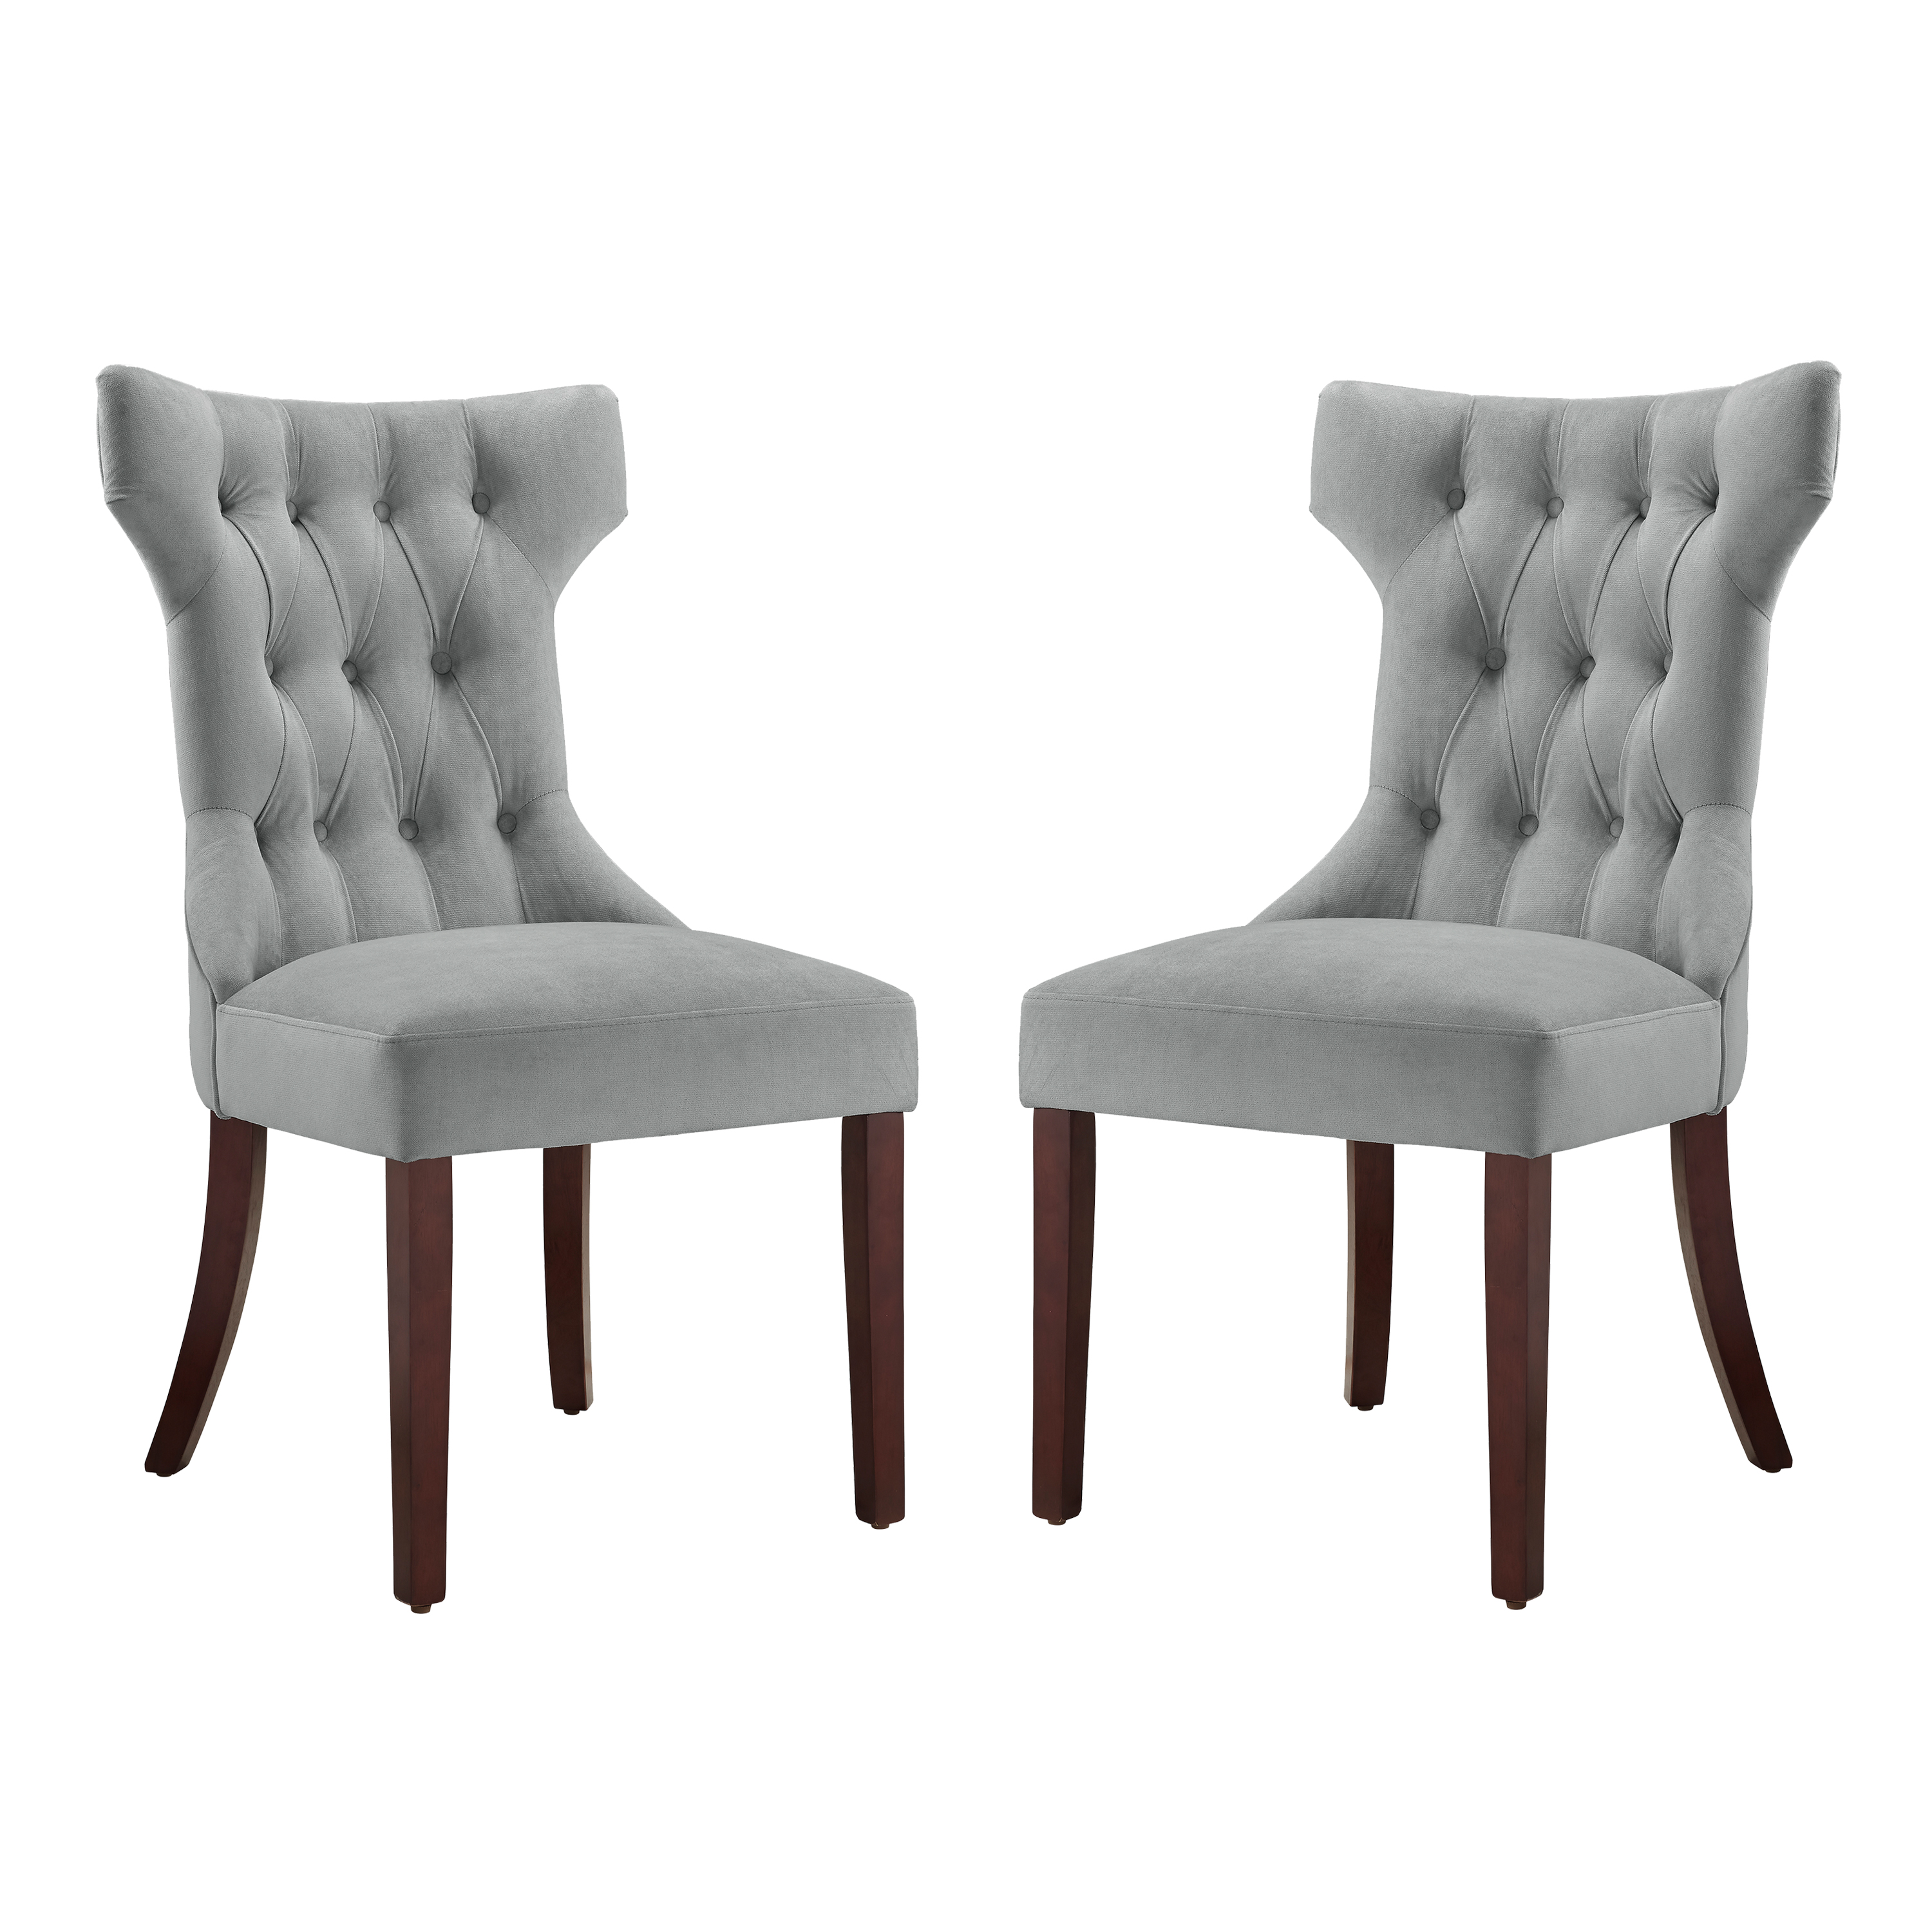 white tufted chair how to make a wooden beach accent chairs dorel living clairborne upholestered dining set of 2